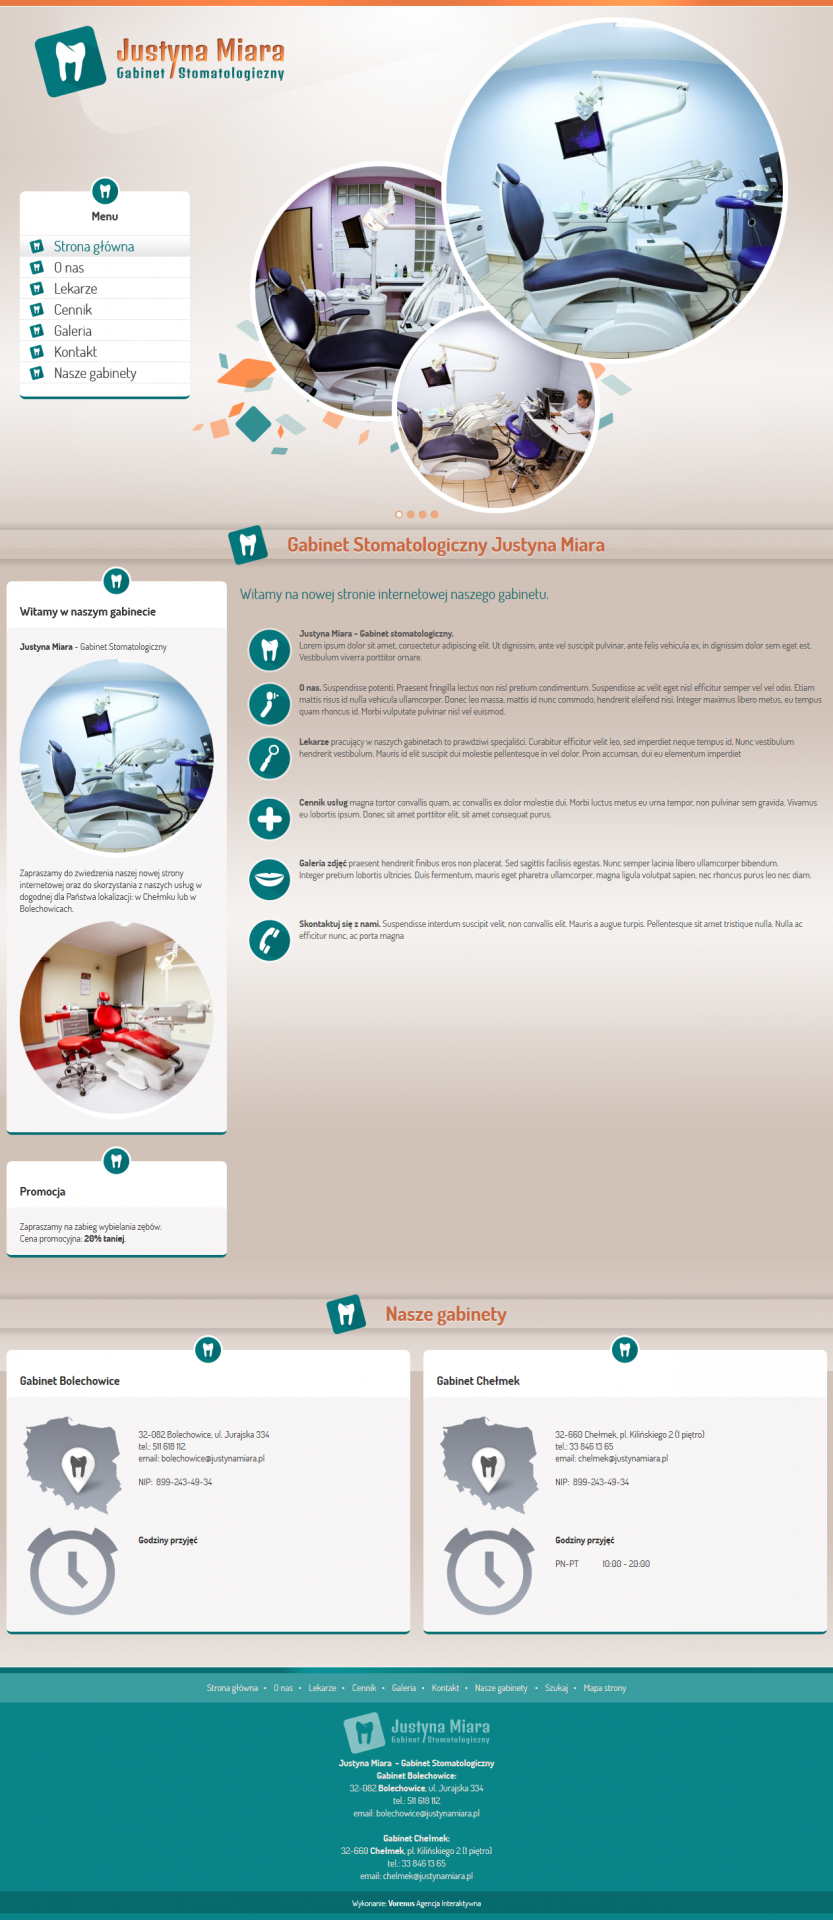 Justyna Miara - Dental Surgery. Website. Home site preview